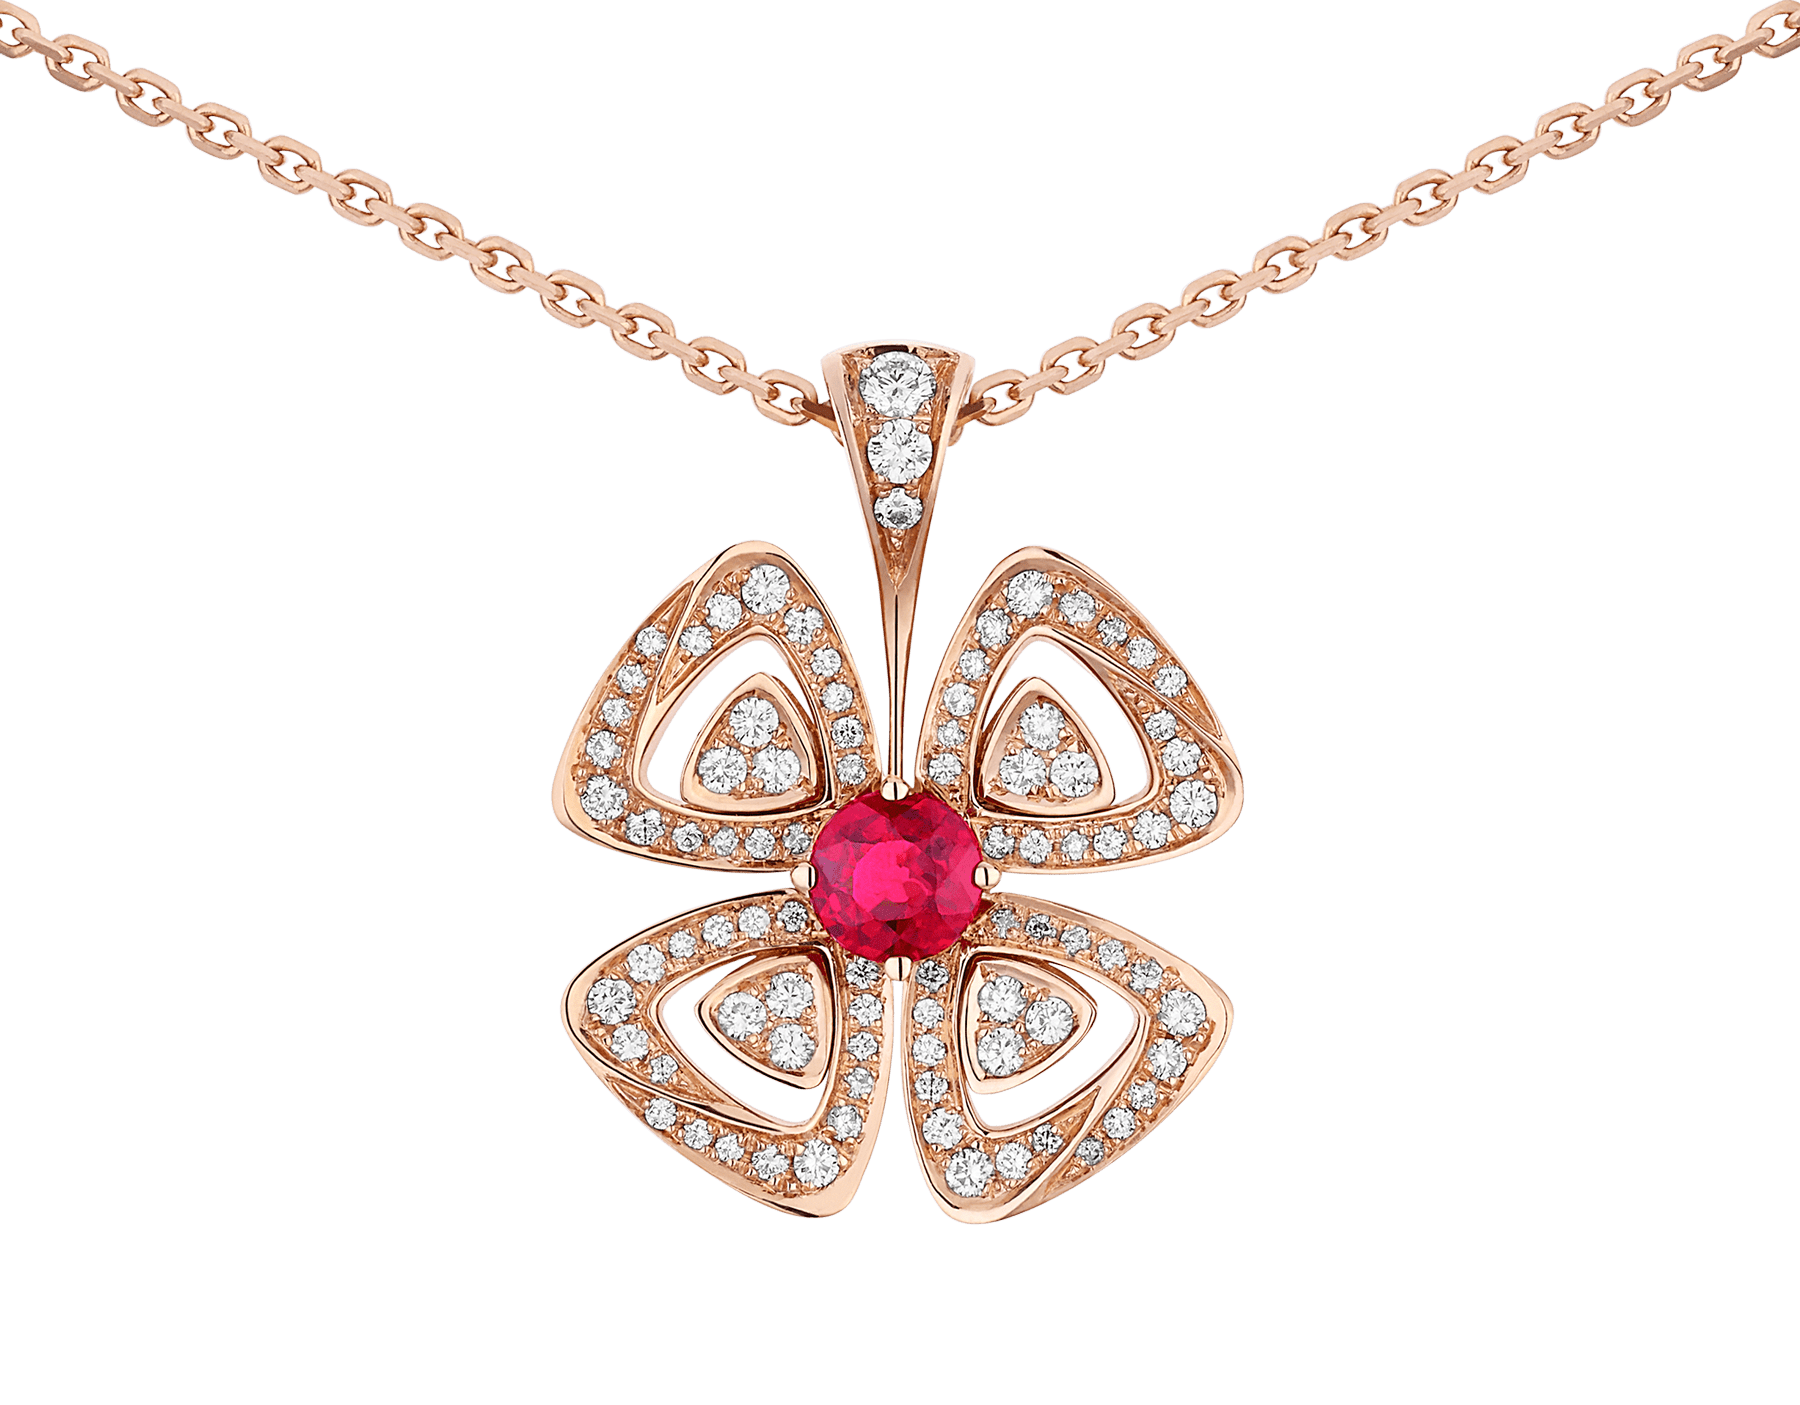 Fiorever 18 kt rose gold pendant necklace set with a central brilliant-cut ruby (0.35 ct) and pavé diamonds (0.31 ct) 358428 image 3